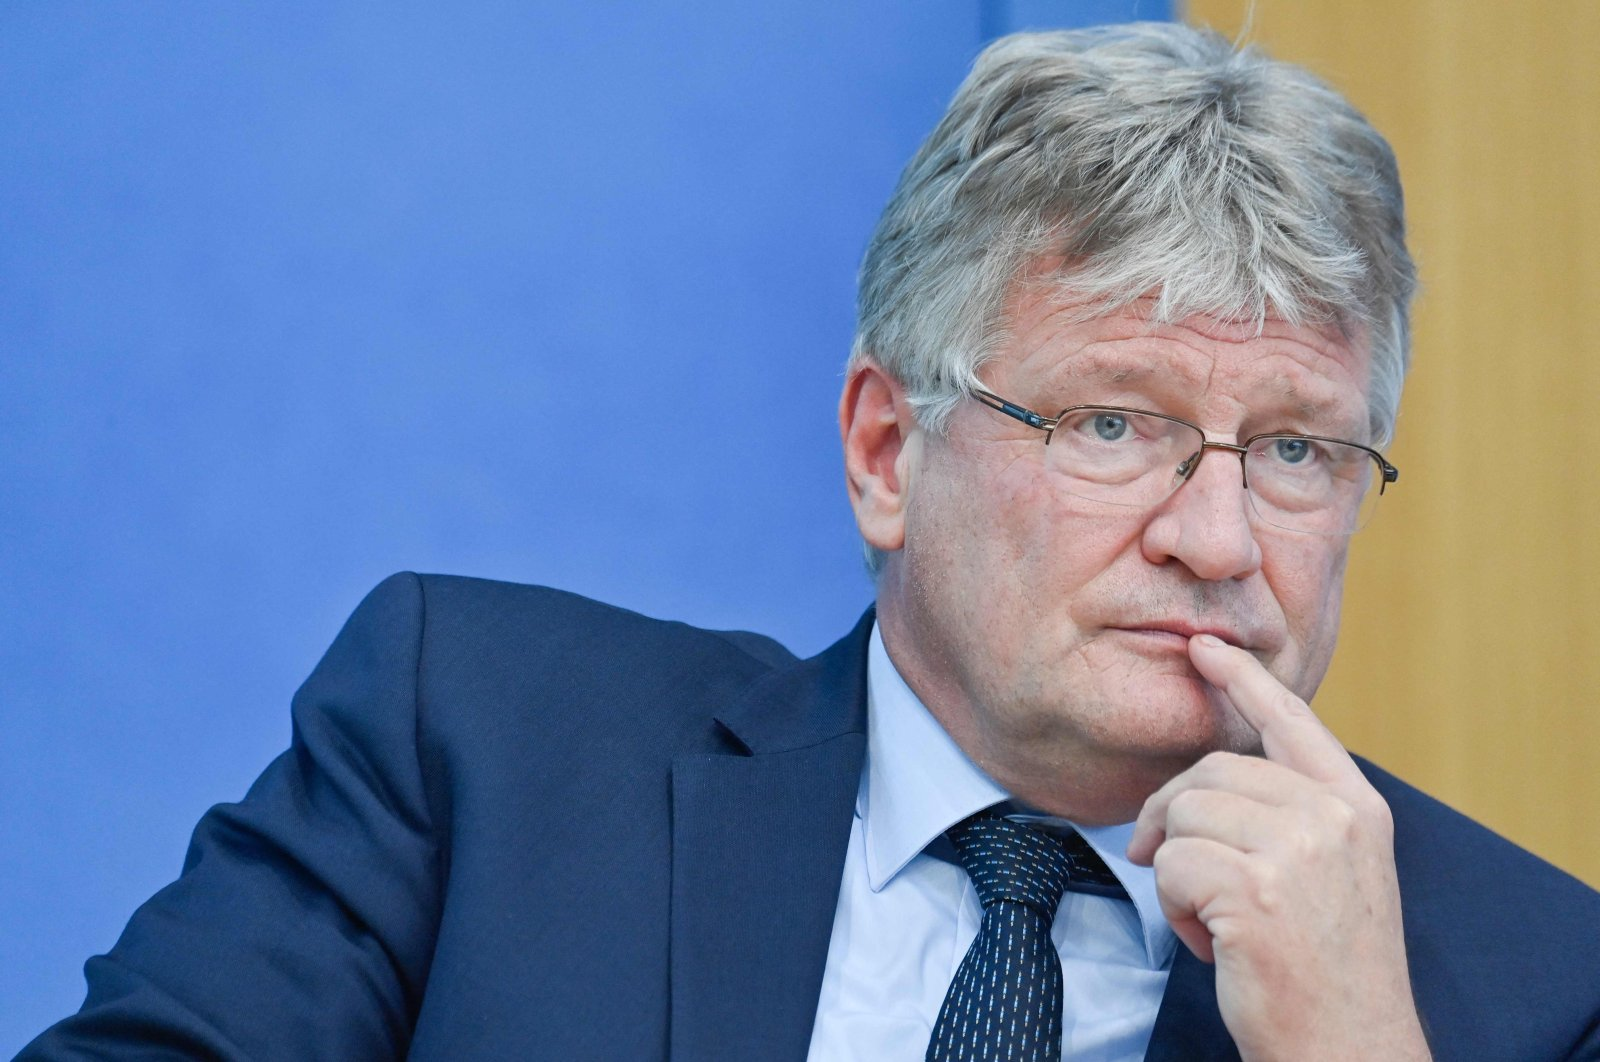 Co-leader of the far-right Alternative for Germany (AfD) party Joerg Meuthen during a press conference in Berlin, one day after general elections, Germany, Sept. 27, 2021. (AFP Photo)